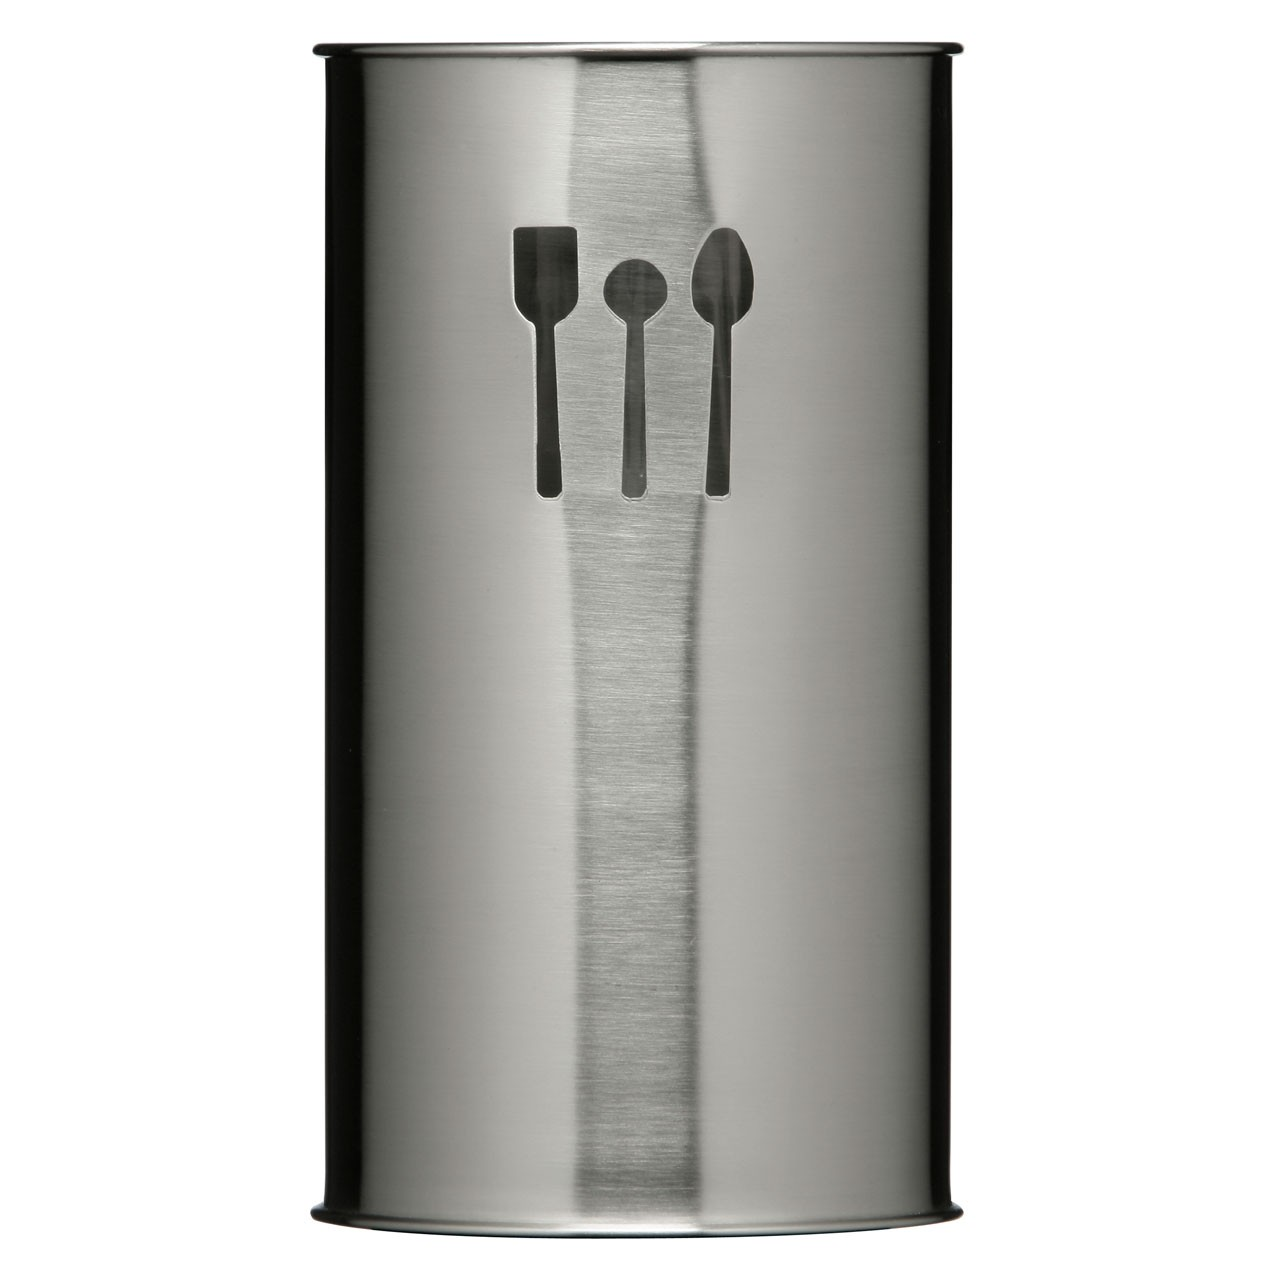 Premier Housewares Utensil Holder - Stainless Steel